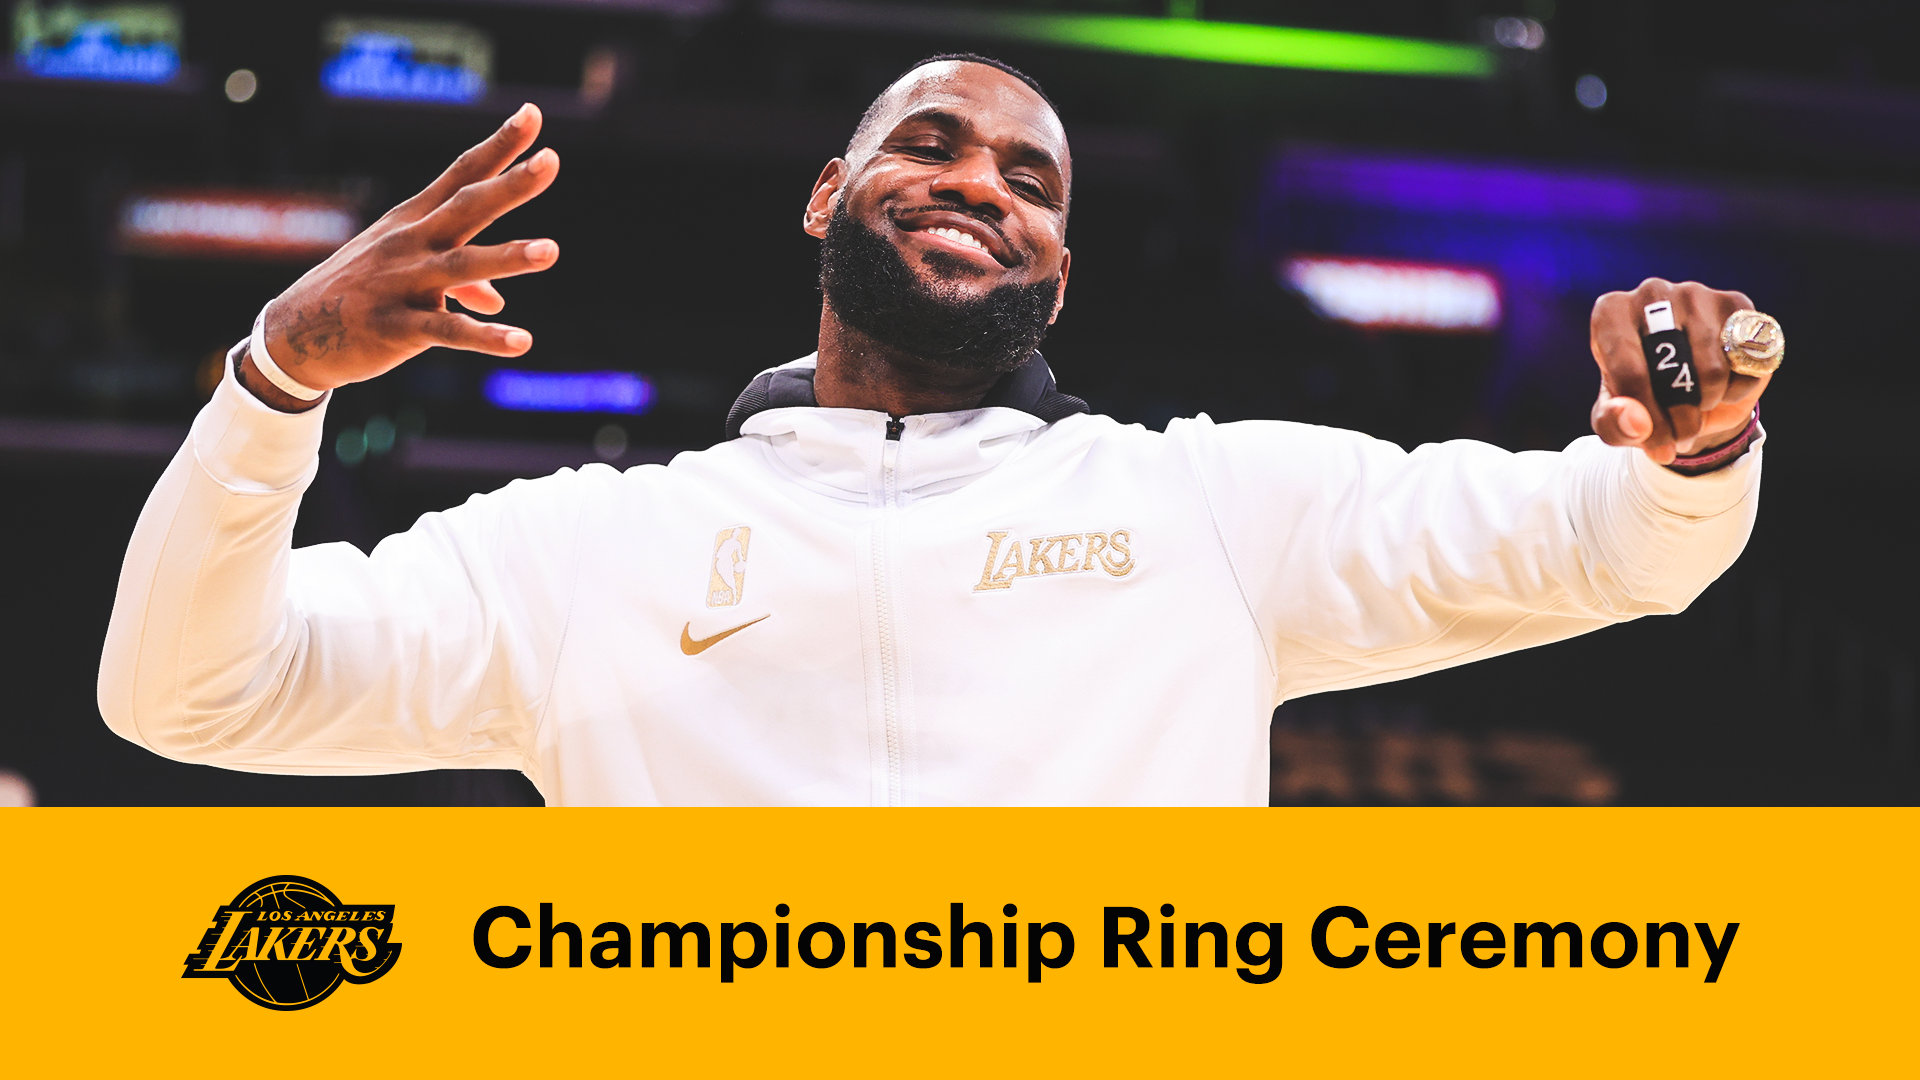 Lakers Receive Their 2020 Championship Rings